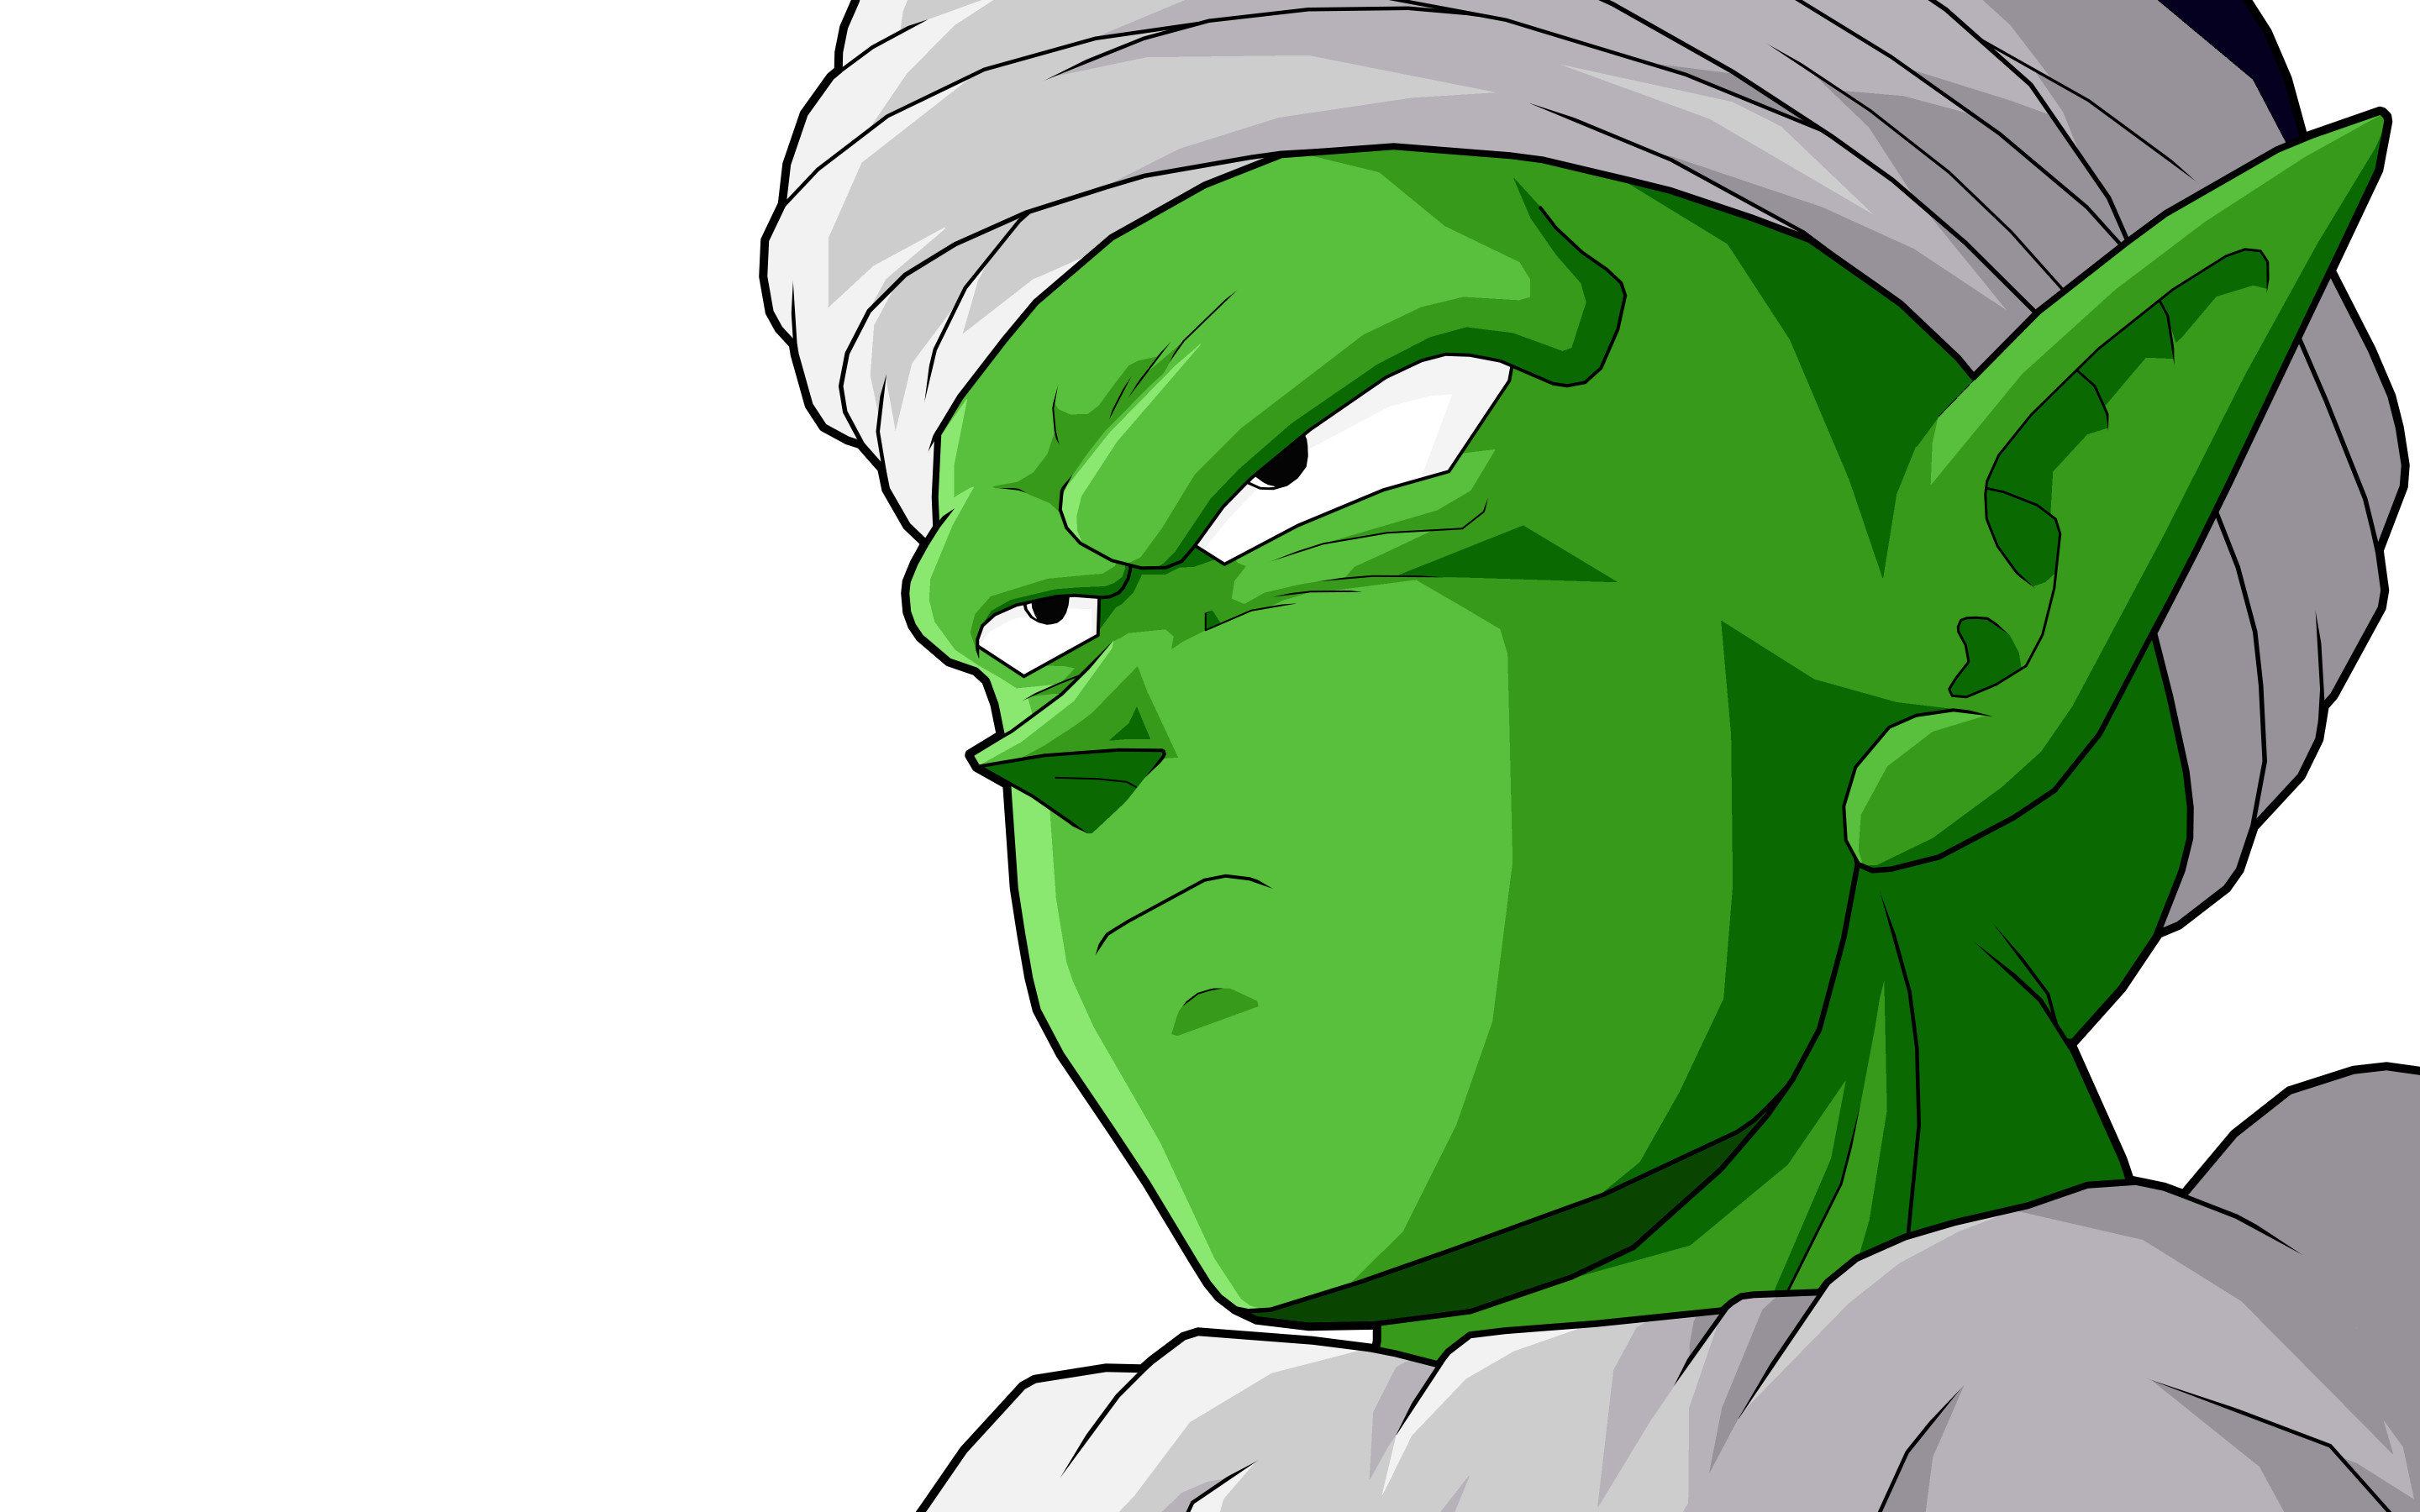 Piccolo Dragon Ball Wallpapers Hd For Desktop Backgrounds